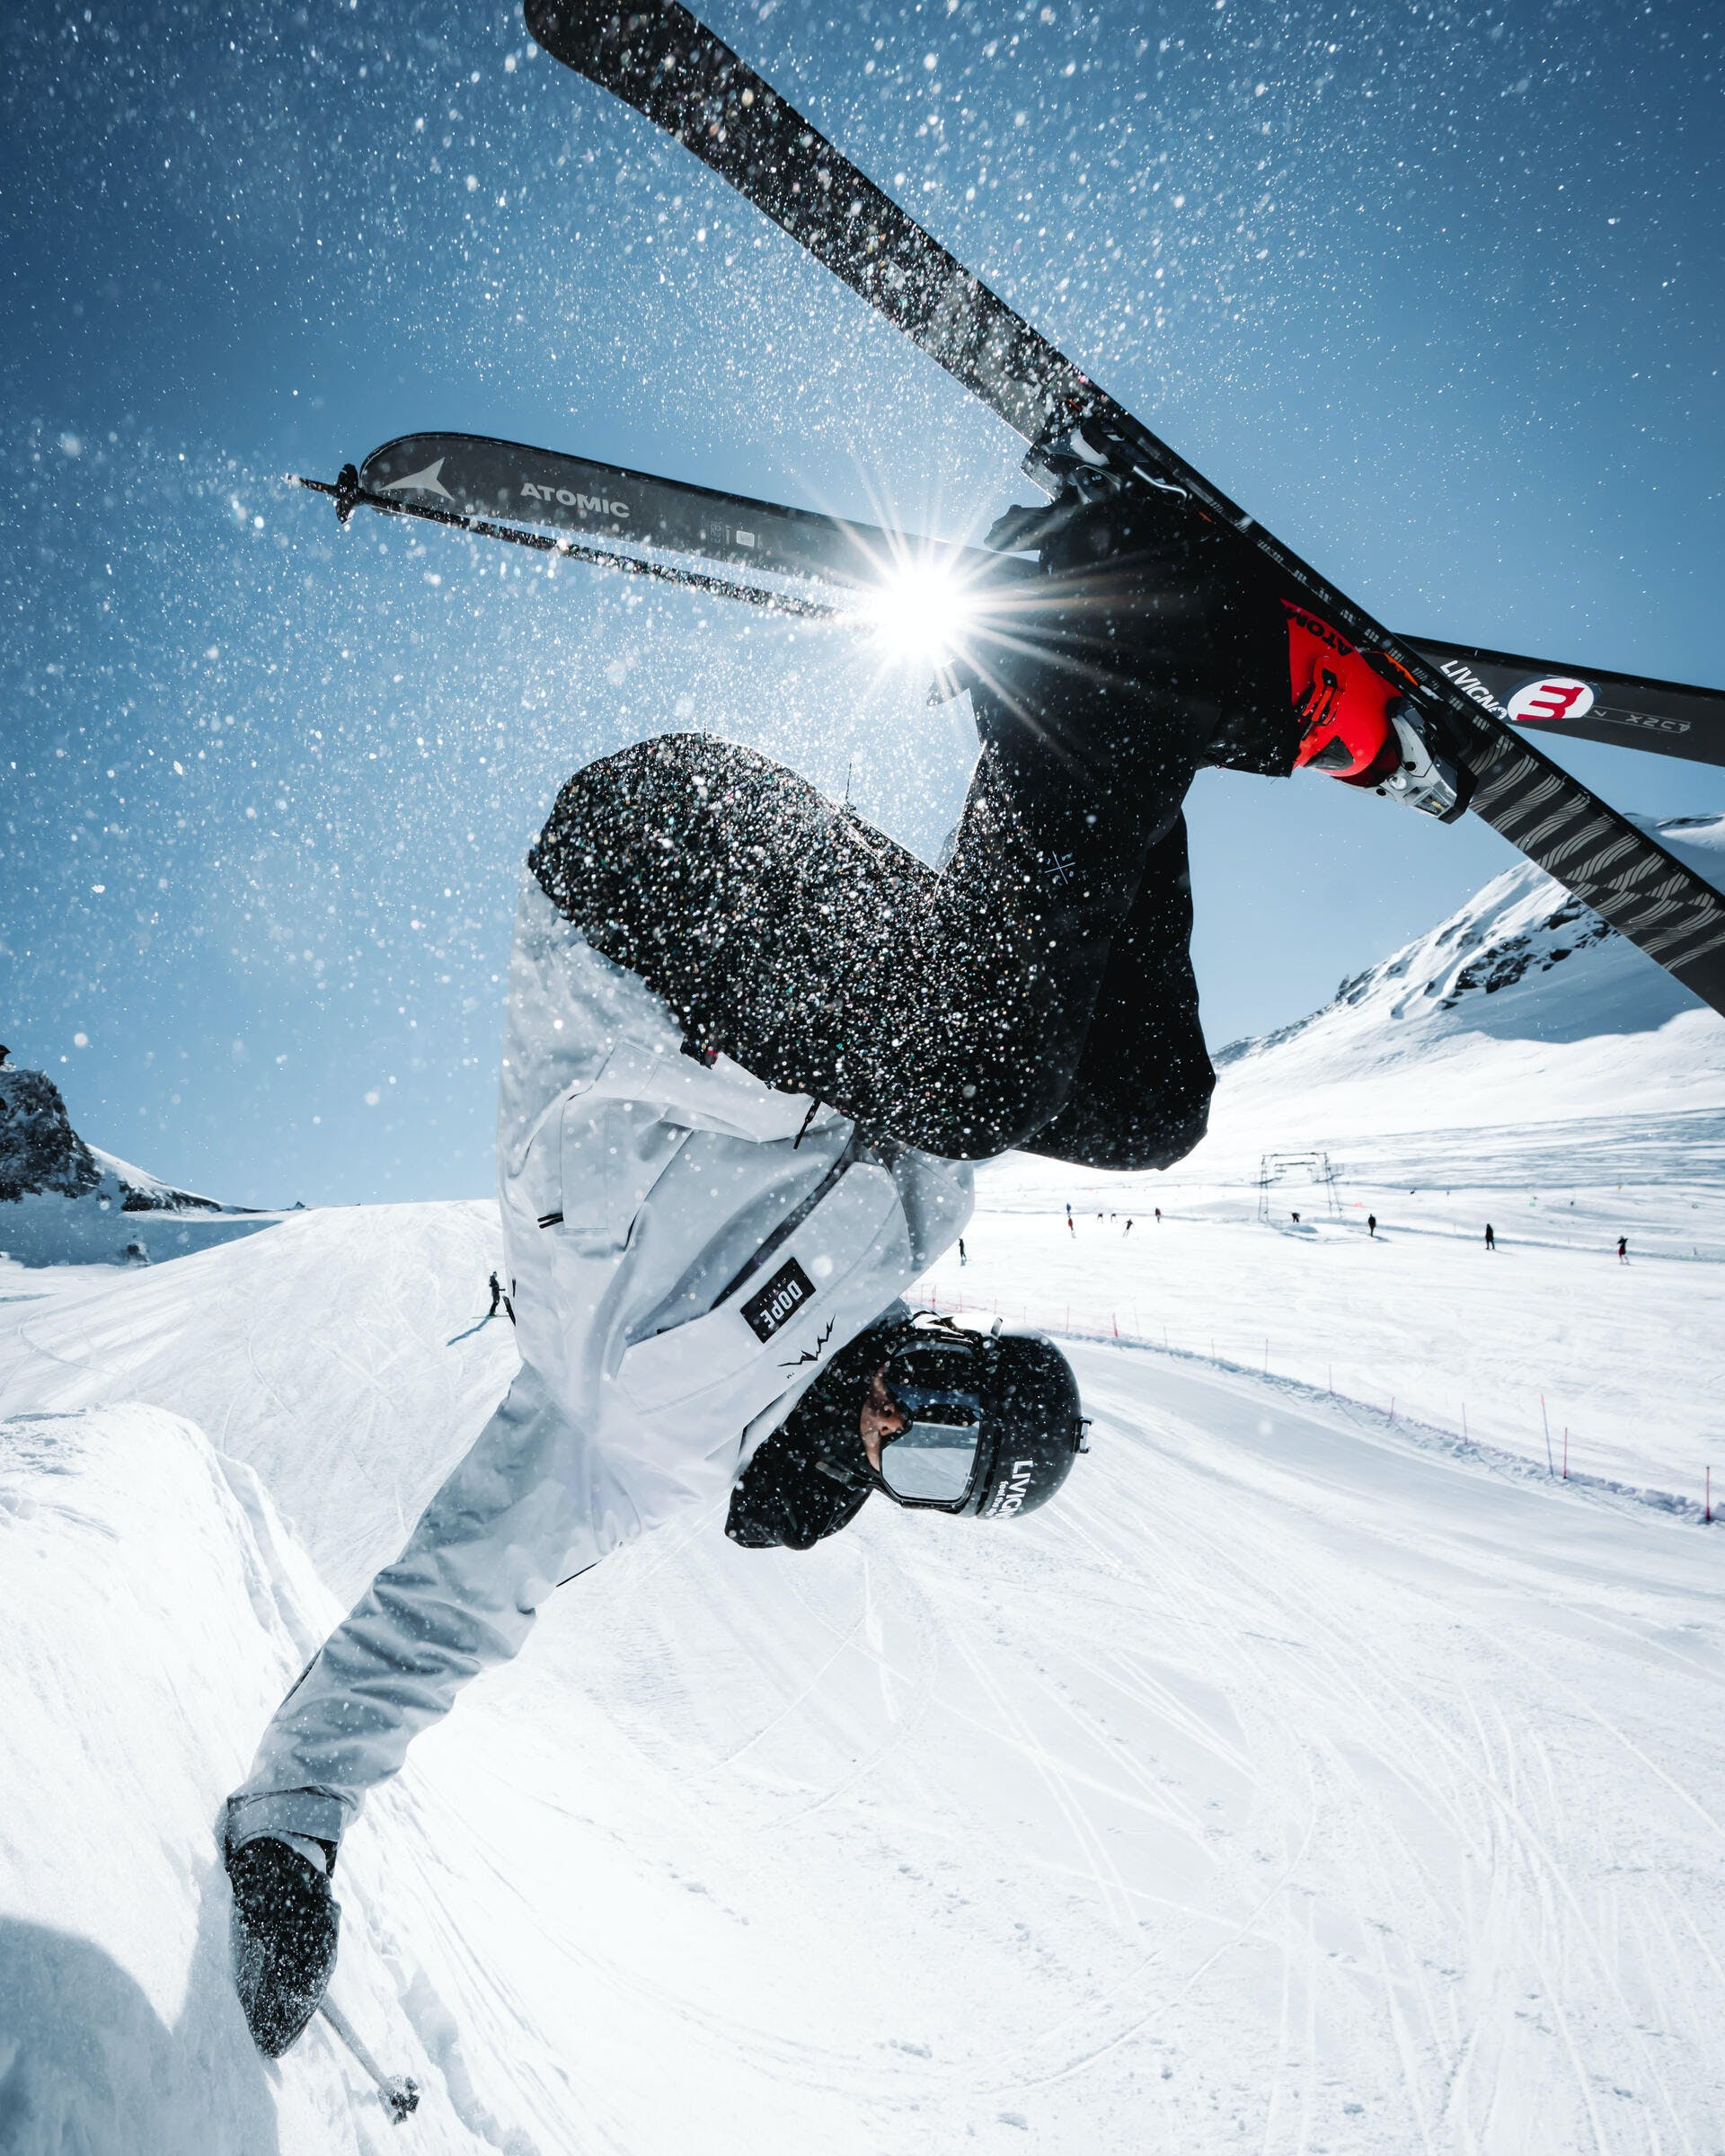 how to do a mute grab on skis